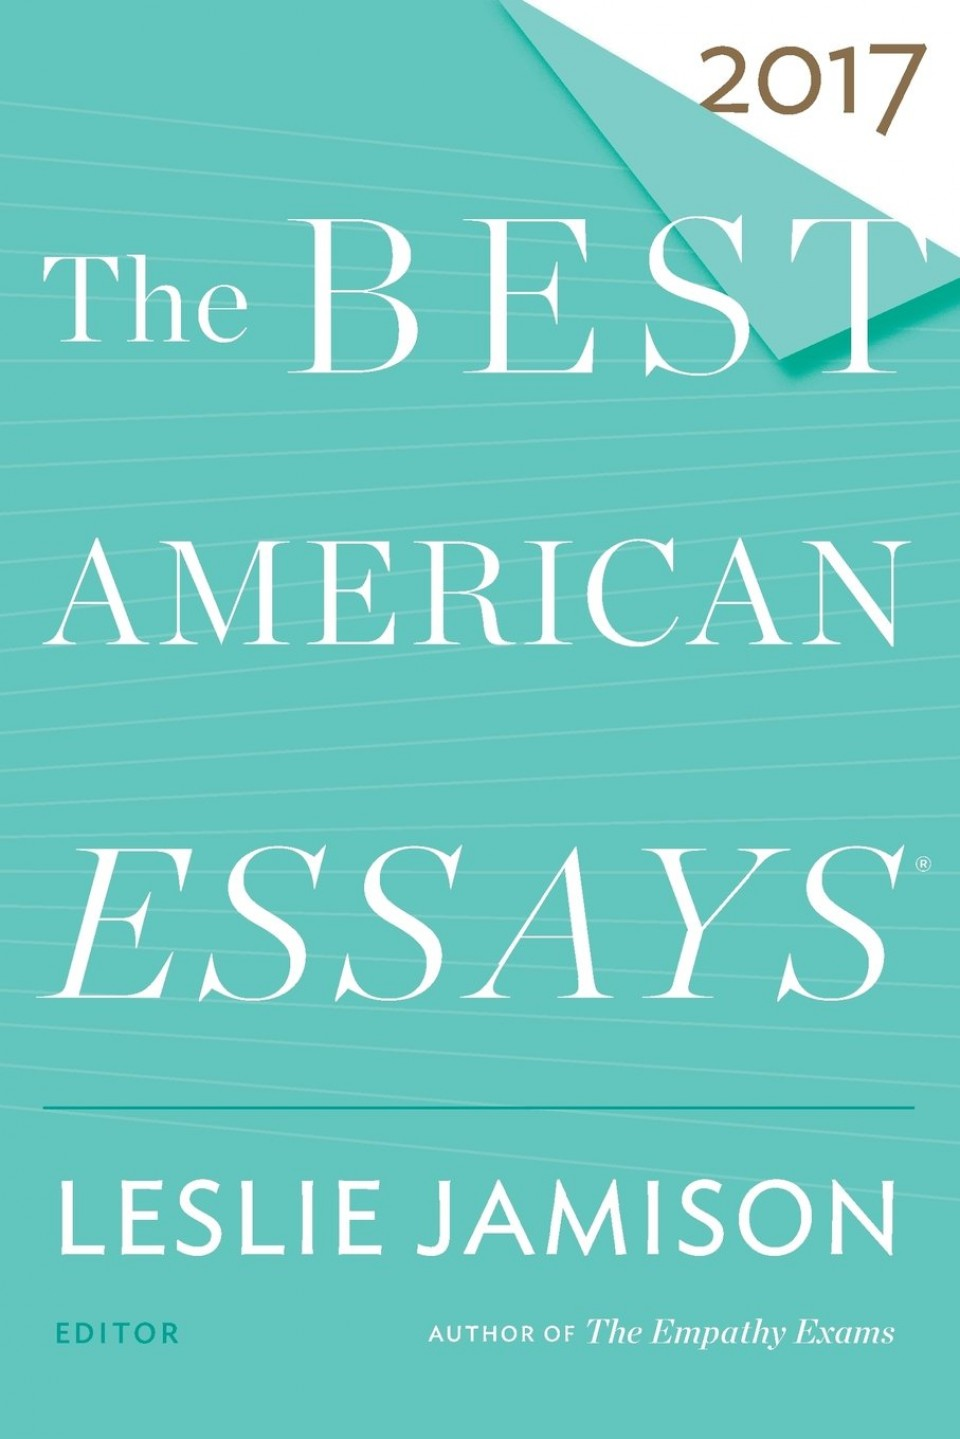 001 61tzl Nruvl Essay Example The Best American Wonderful Essays 2018 Pdf 2017 Table Of Contents 2015 Free 960